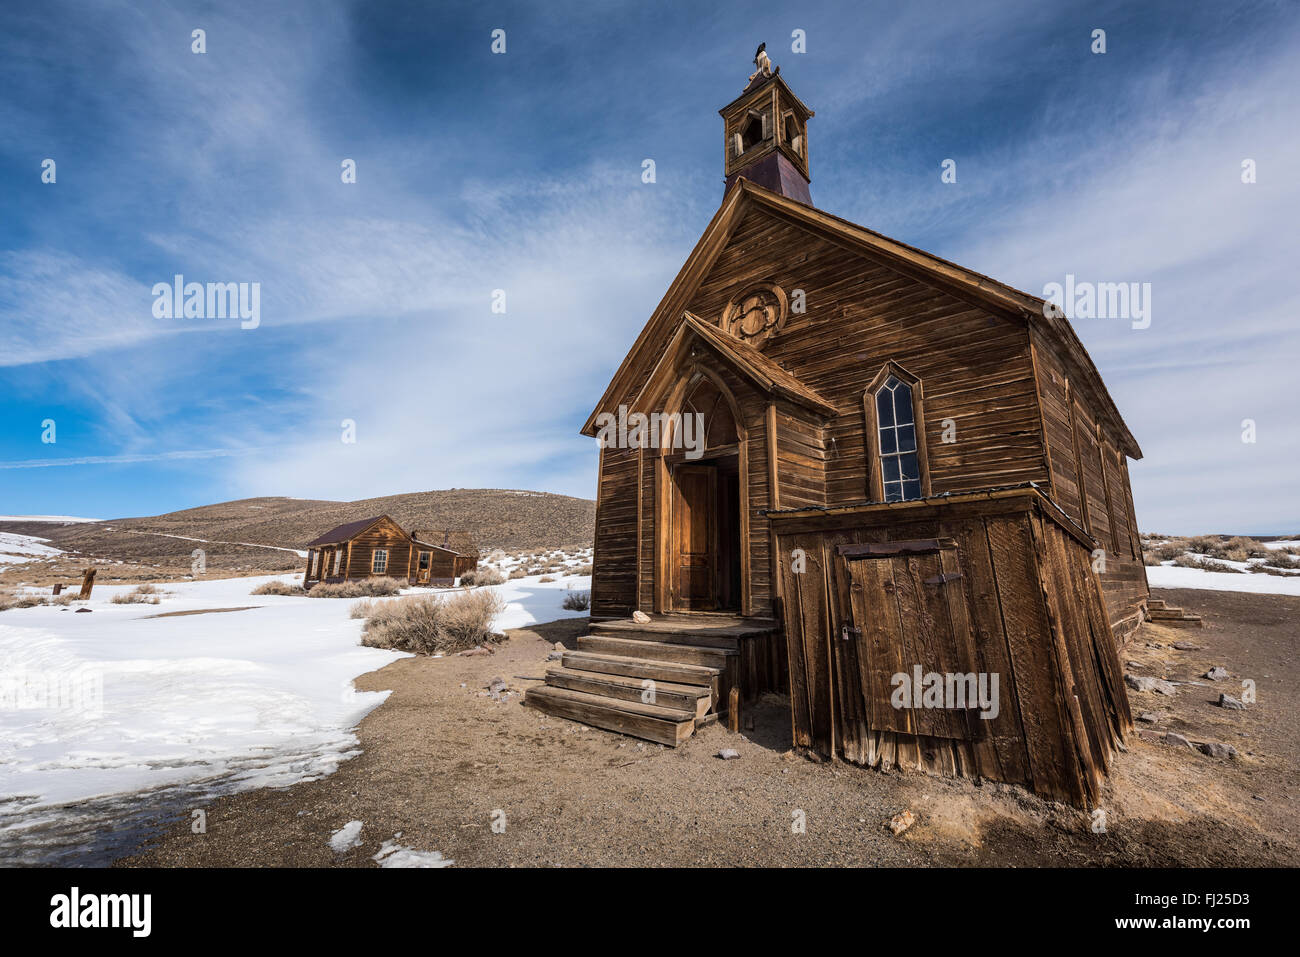 Old church at Bodie ghost town. - Stock Image